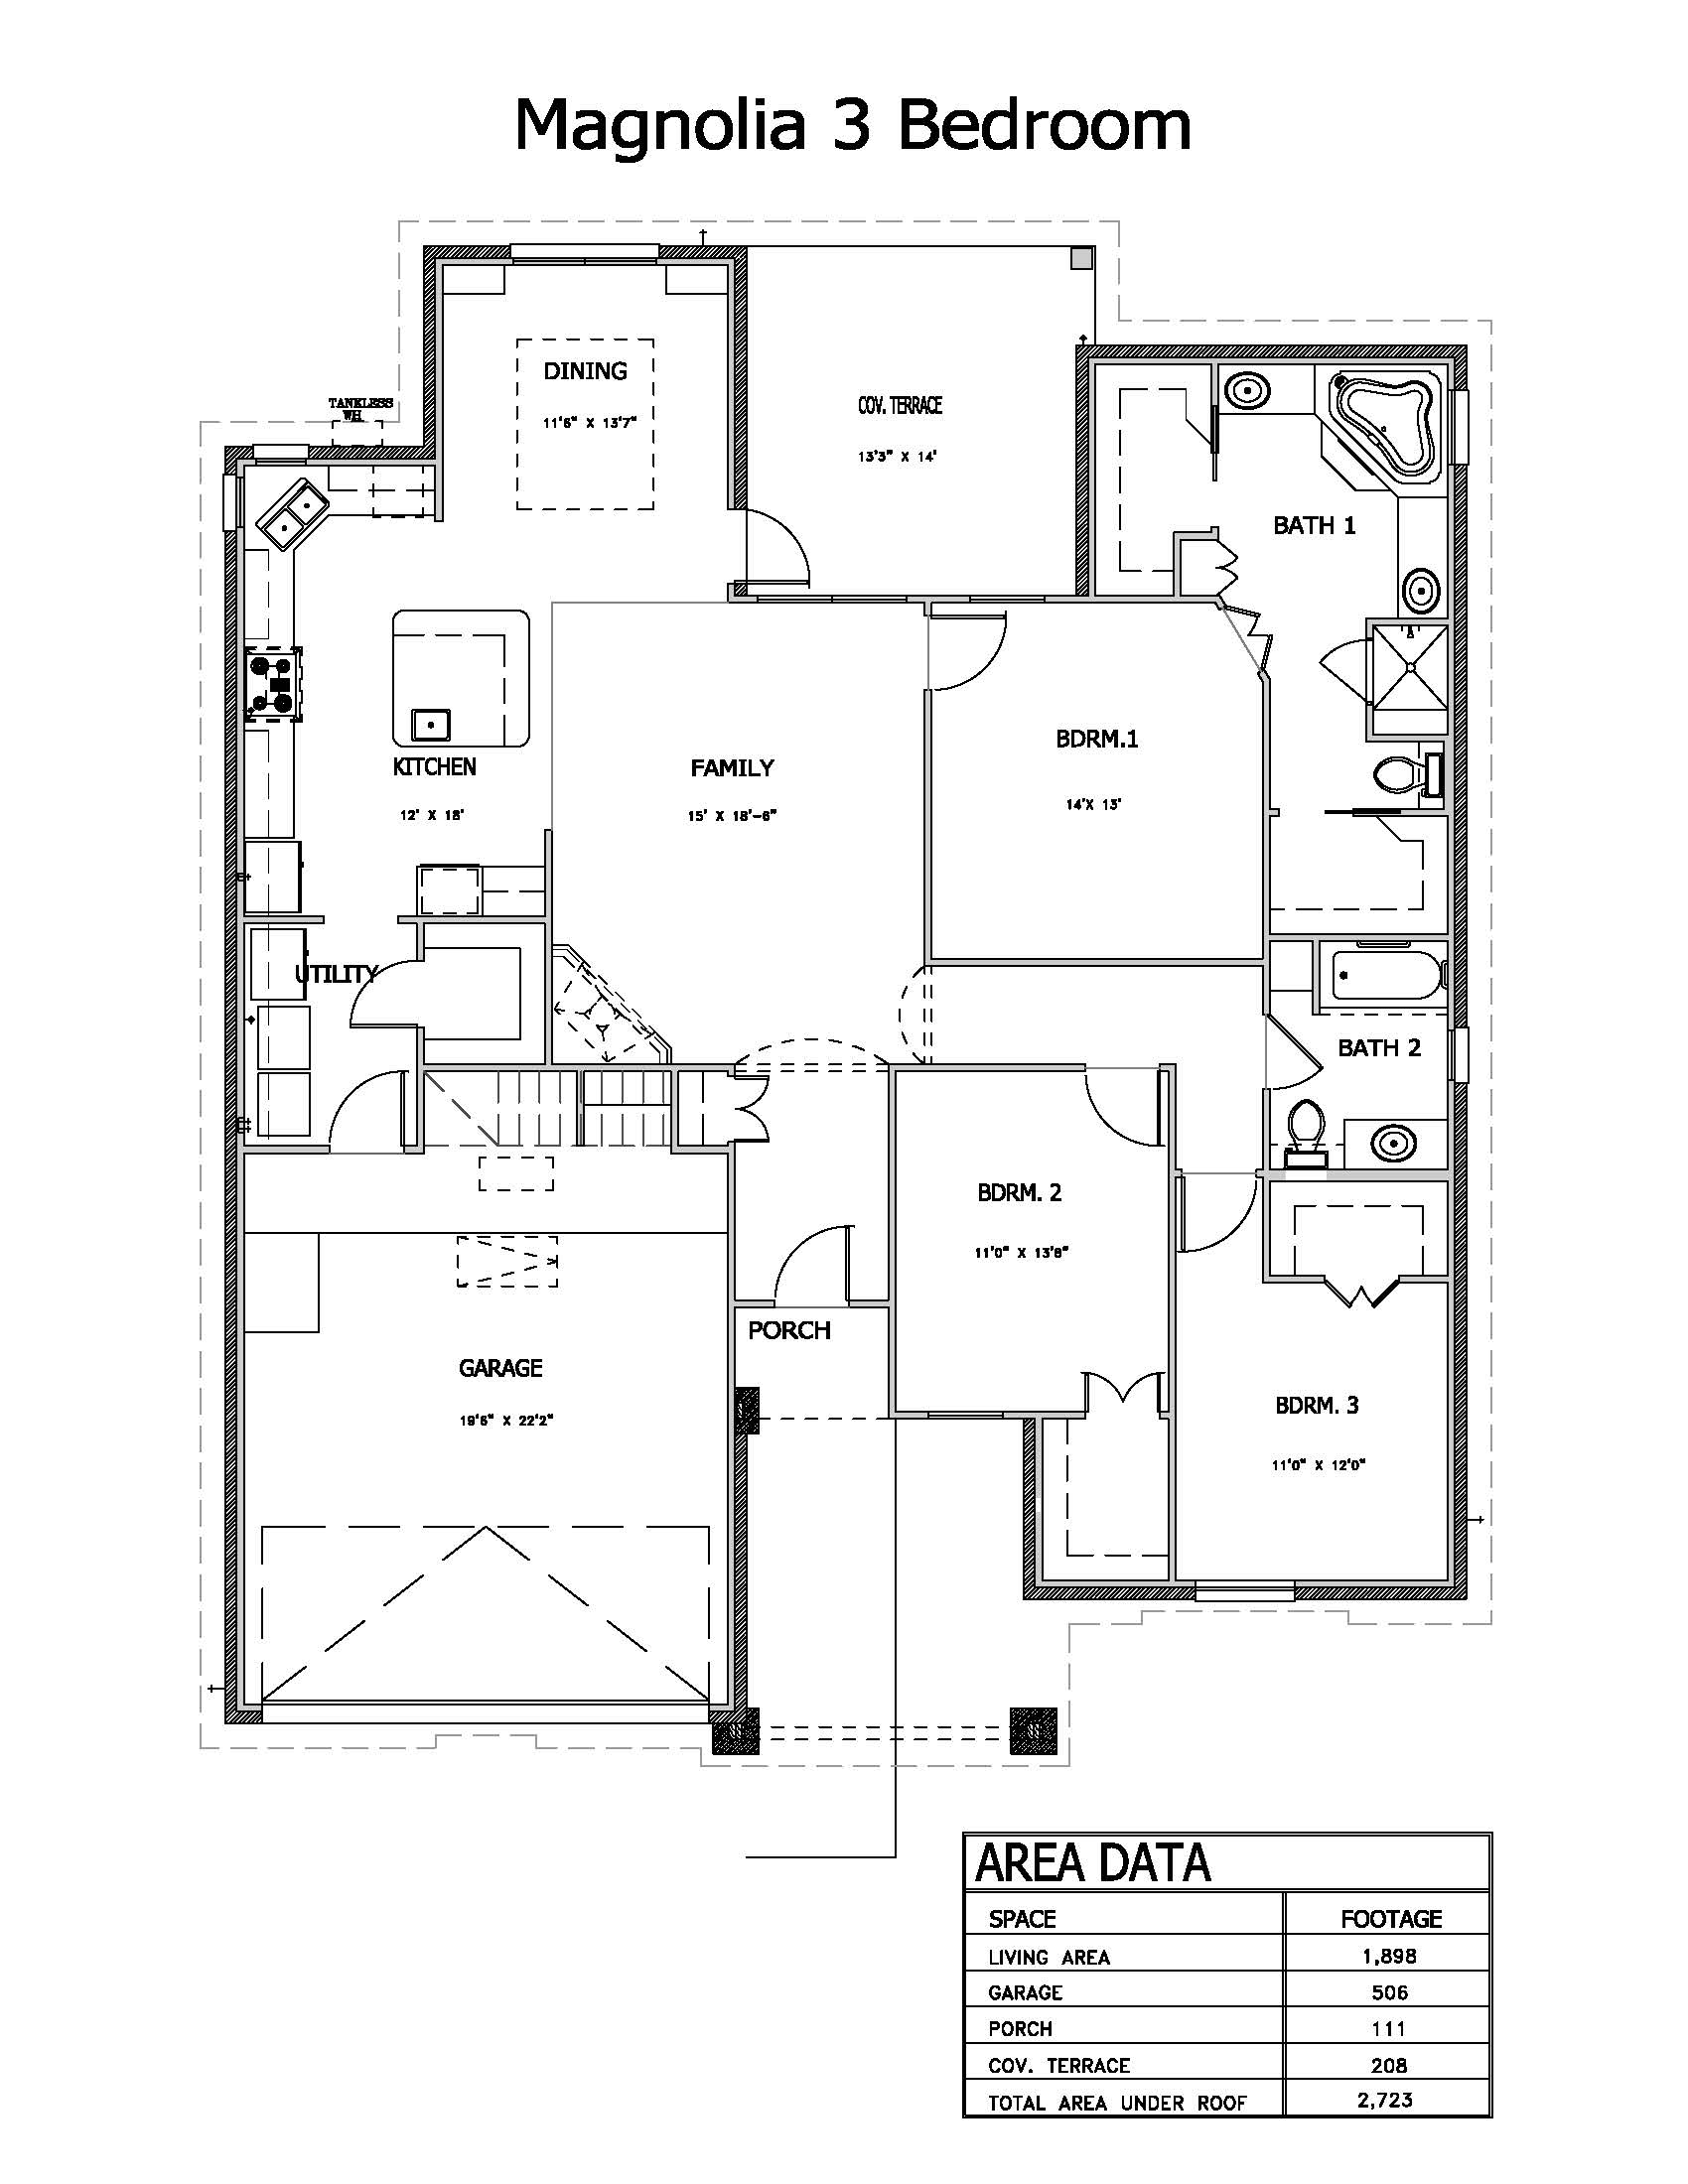 Magnolia 3 Bedroom new